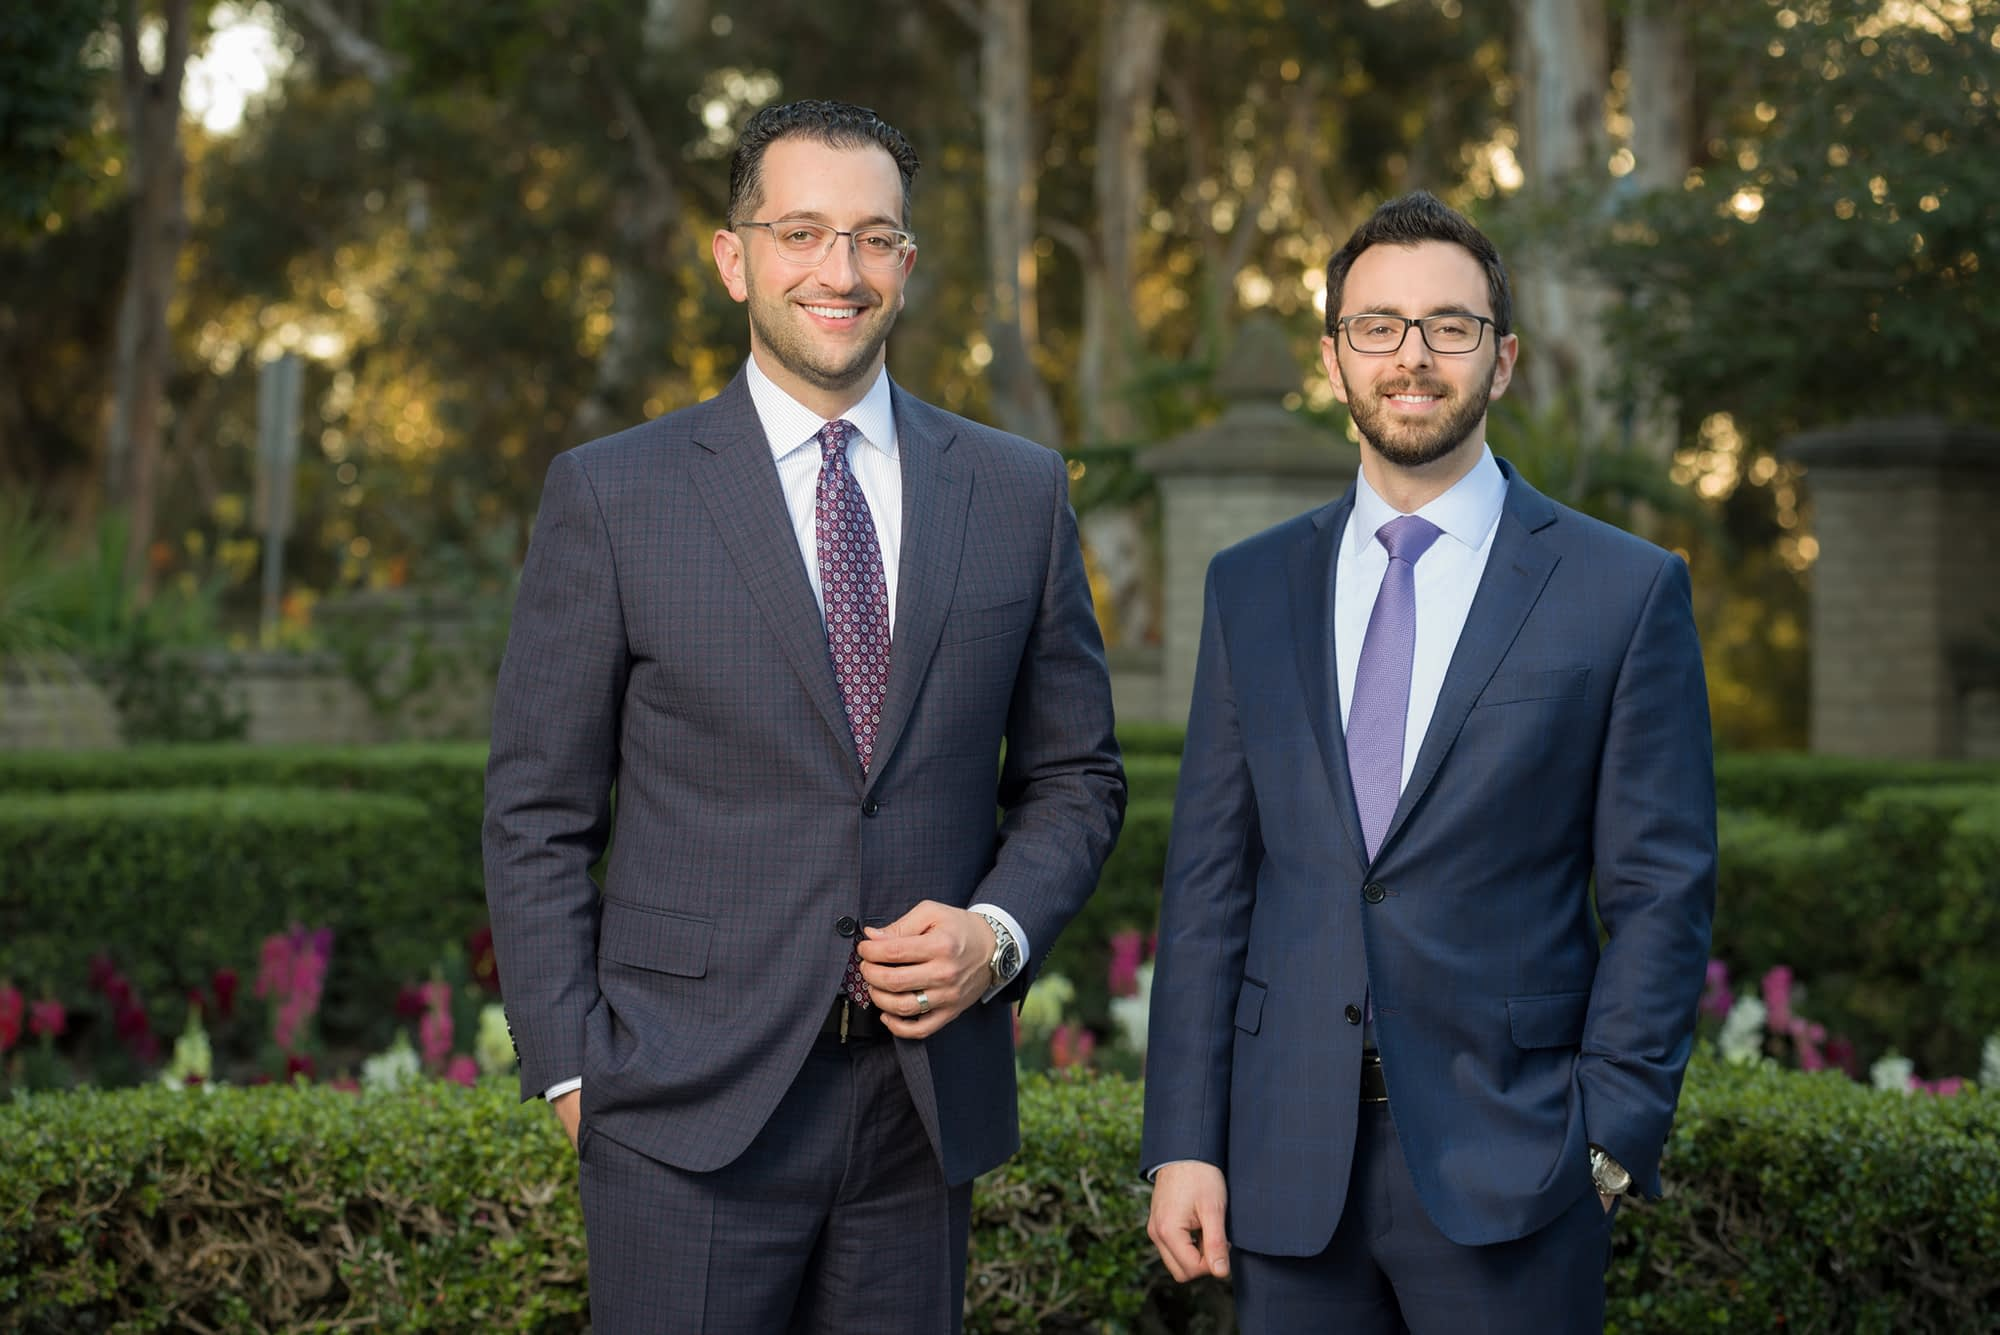 Criminal Defense Attorneys David P. Shapiro and Stefano Molea